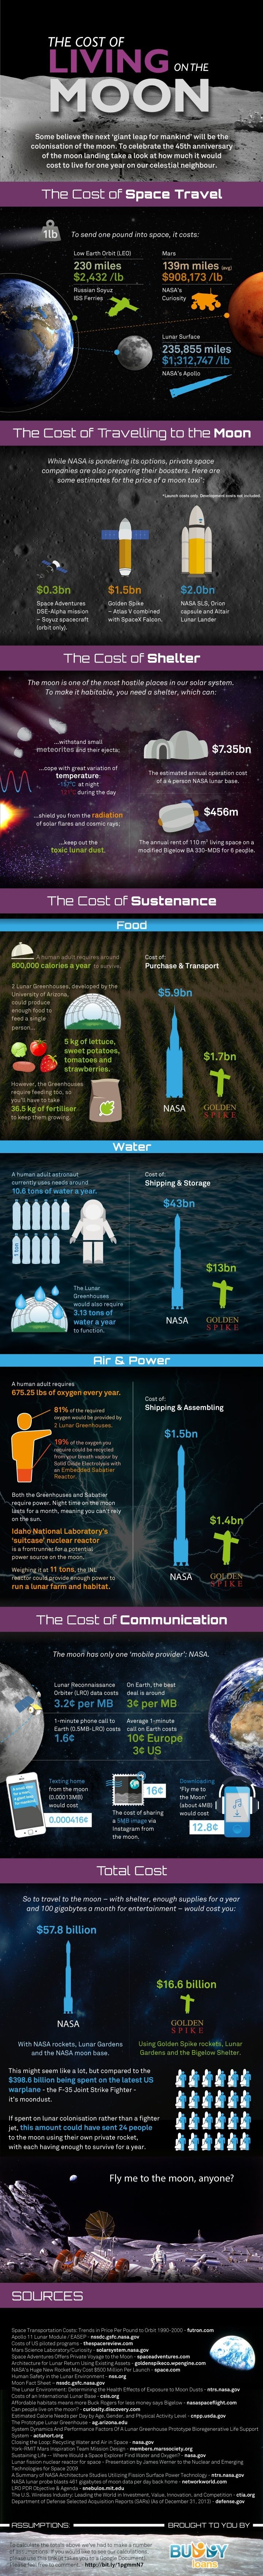 Still, one can't forget how much it brings back to society. - How Much It Costs To Live On The Moon | via Makeuseof